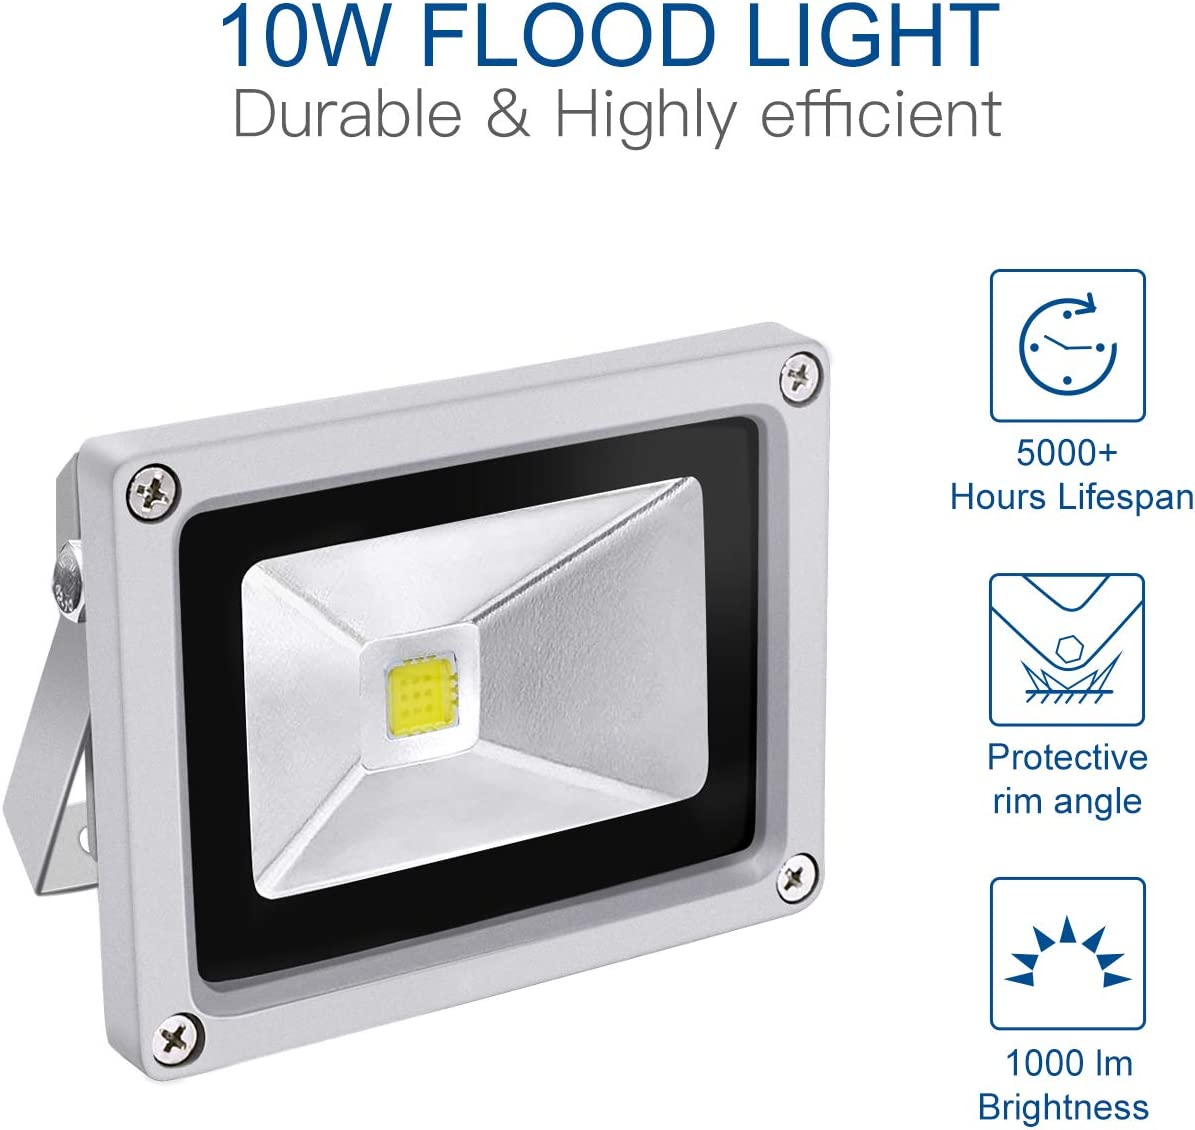 50W 4000LM RGB Change Flood Outdoor Light With Remote Control 85-265V